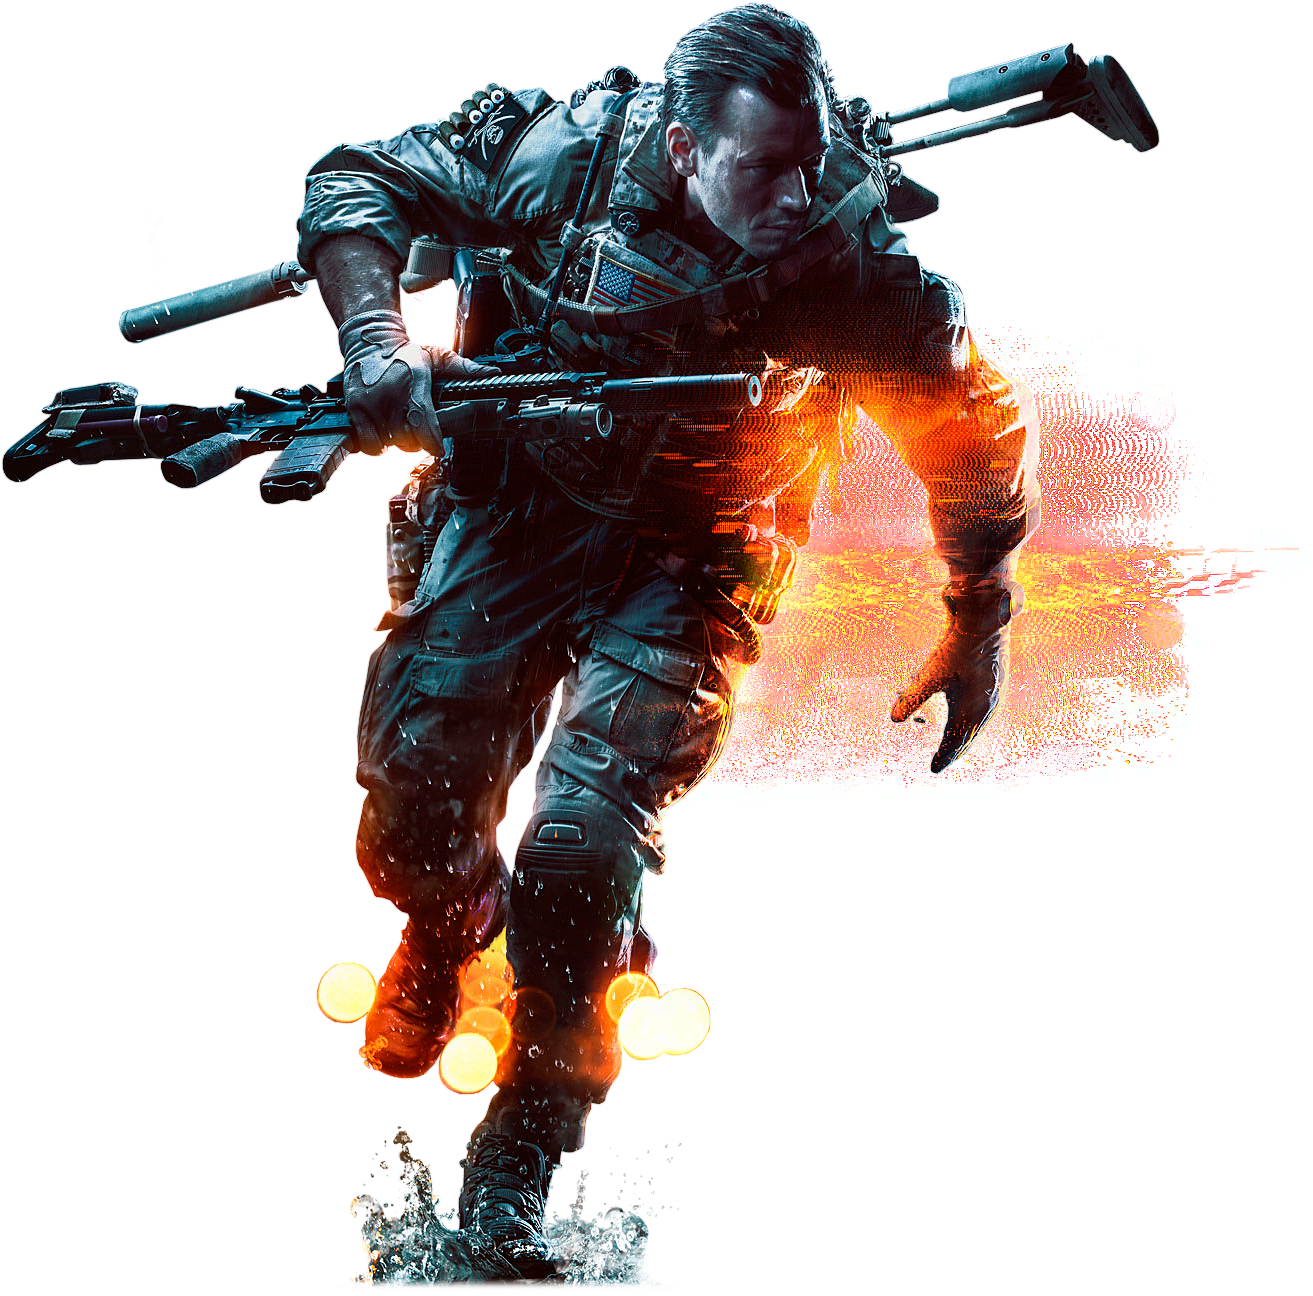 Battlefield Transparent PNG Image